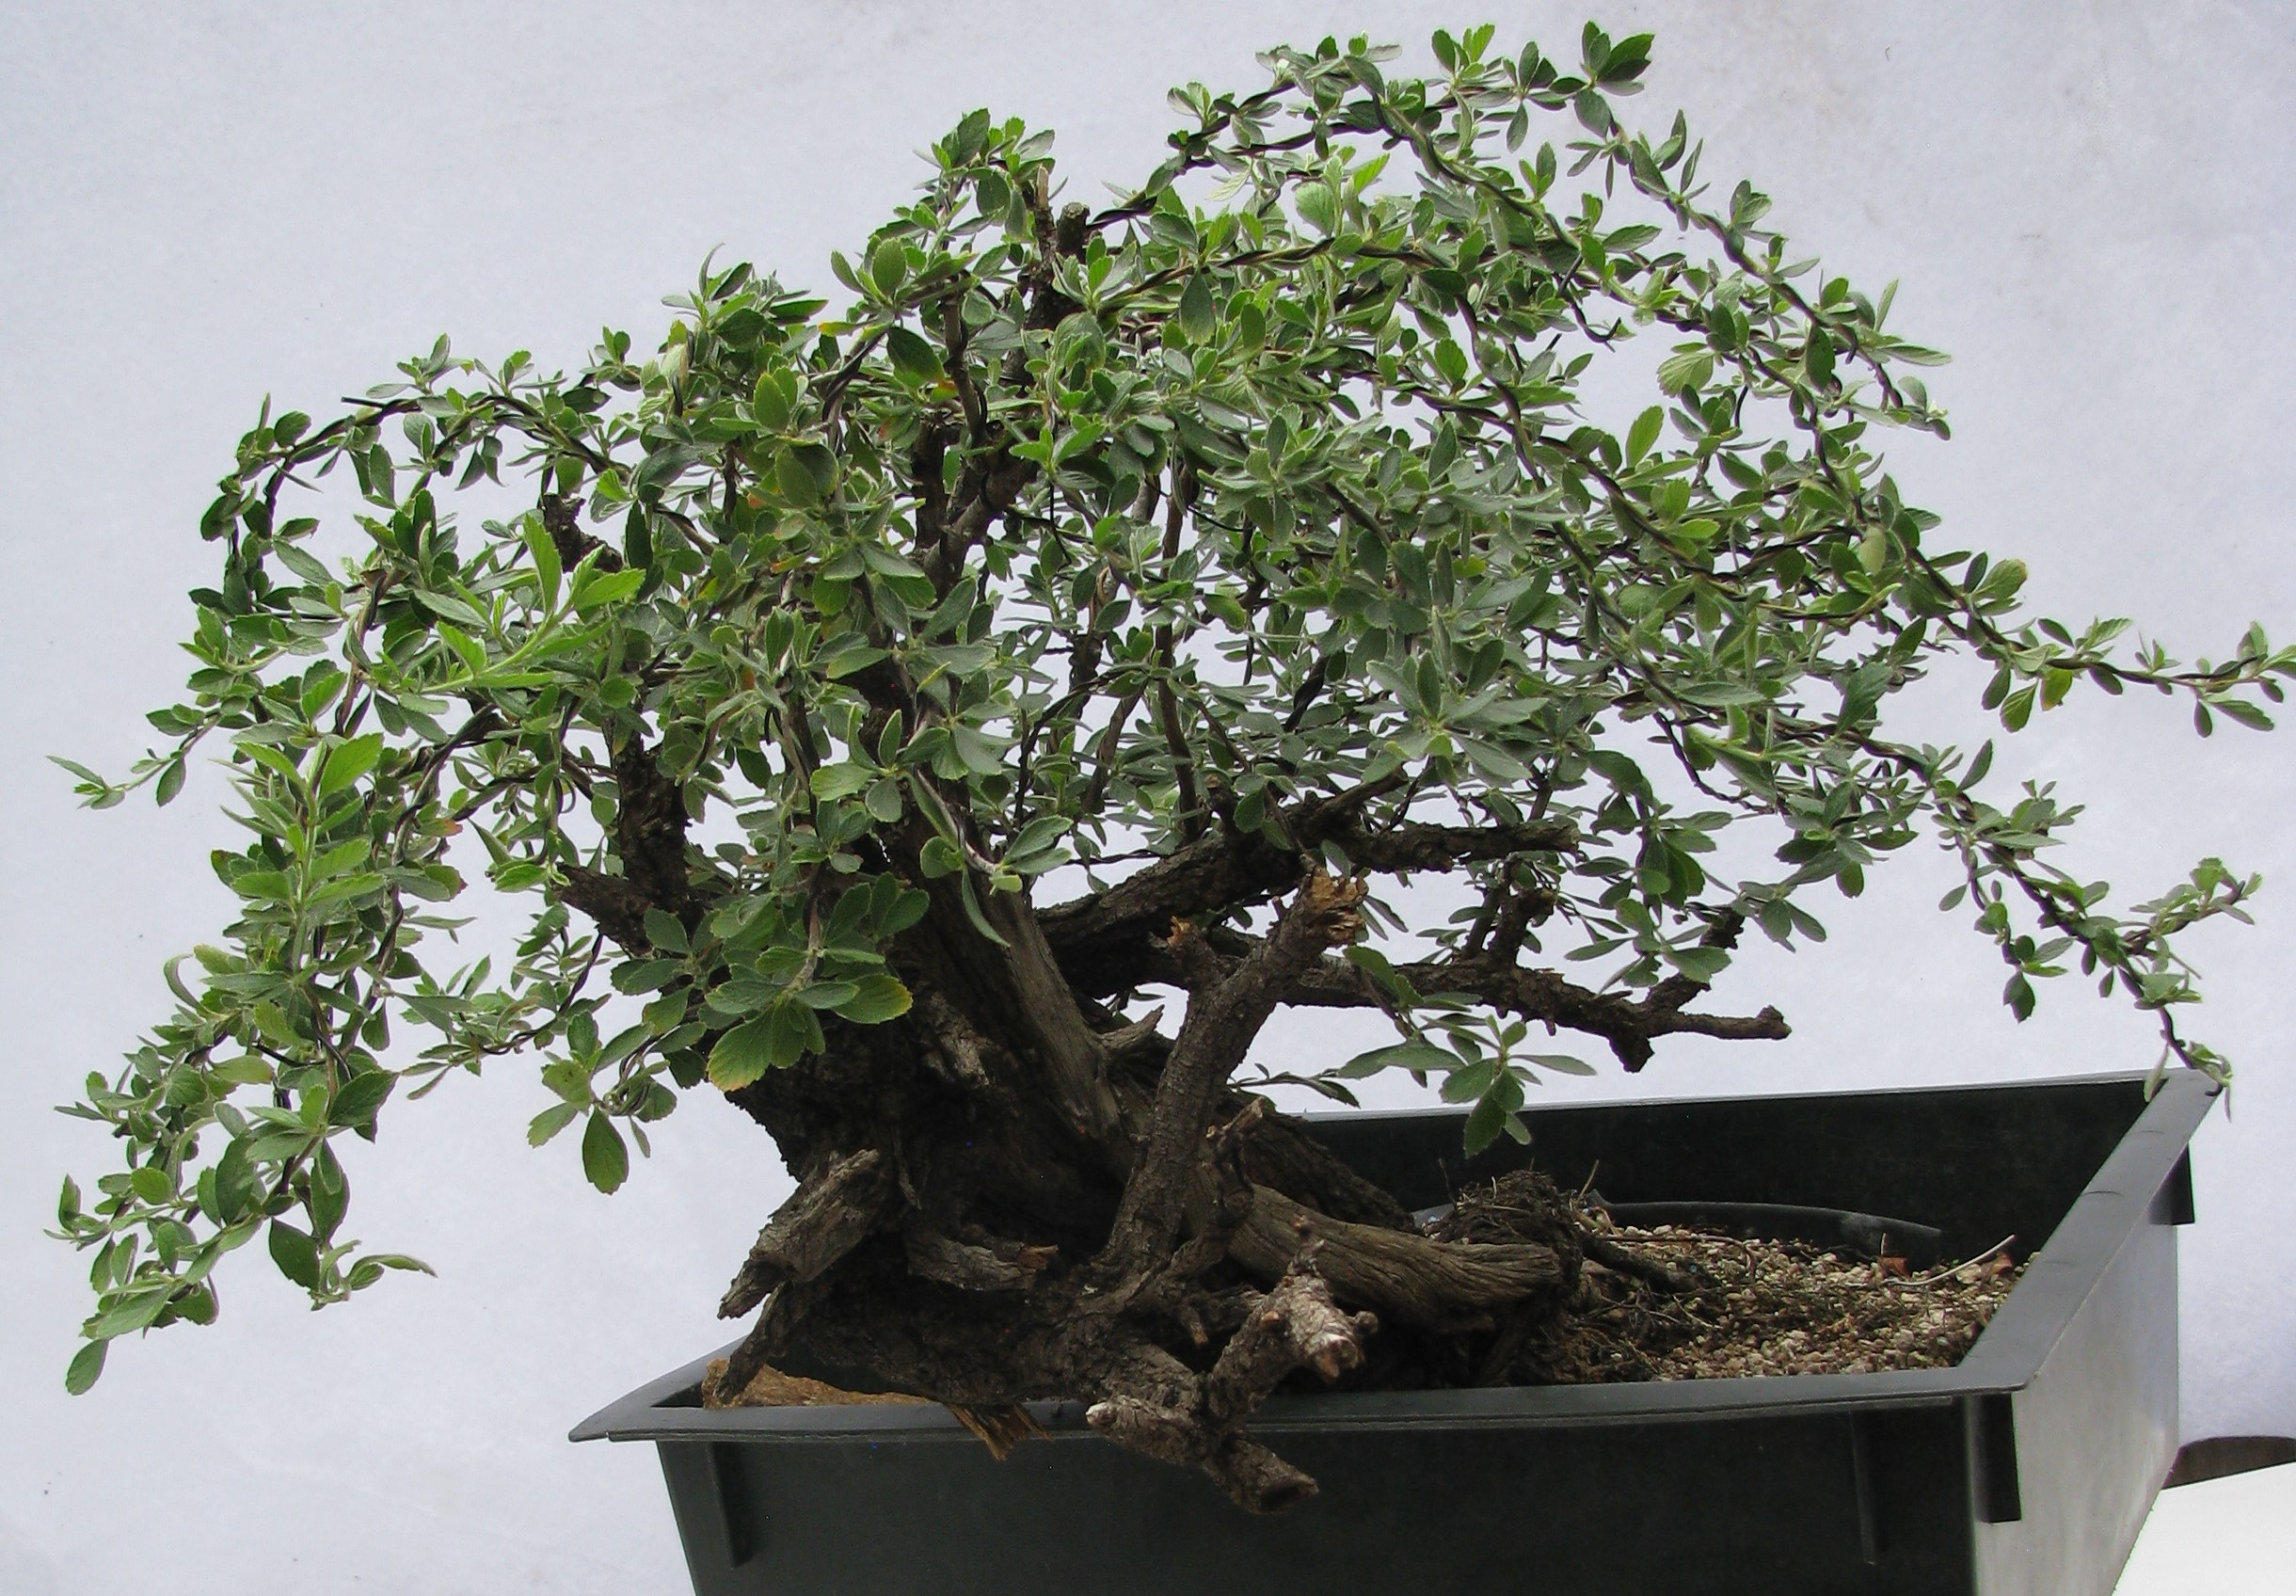 Colorado Bonsai Mountain Mahogany Cercocarpus Breviflorus Gray Var Breviflorus Bonsai 5 Colorado Rocky Mountain Bonsai Suiseki